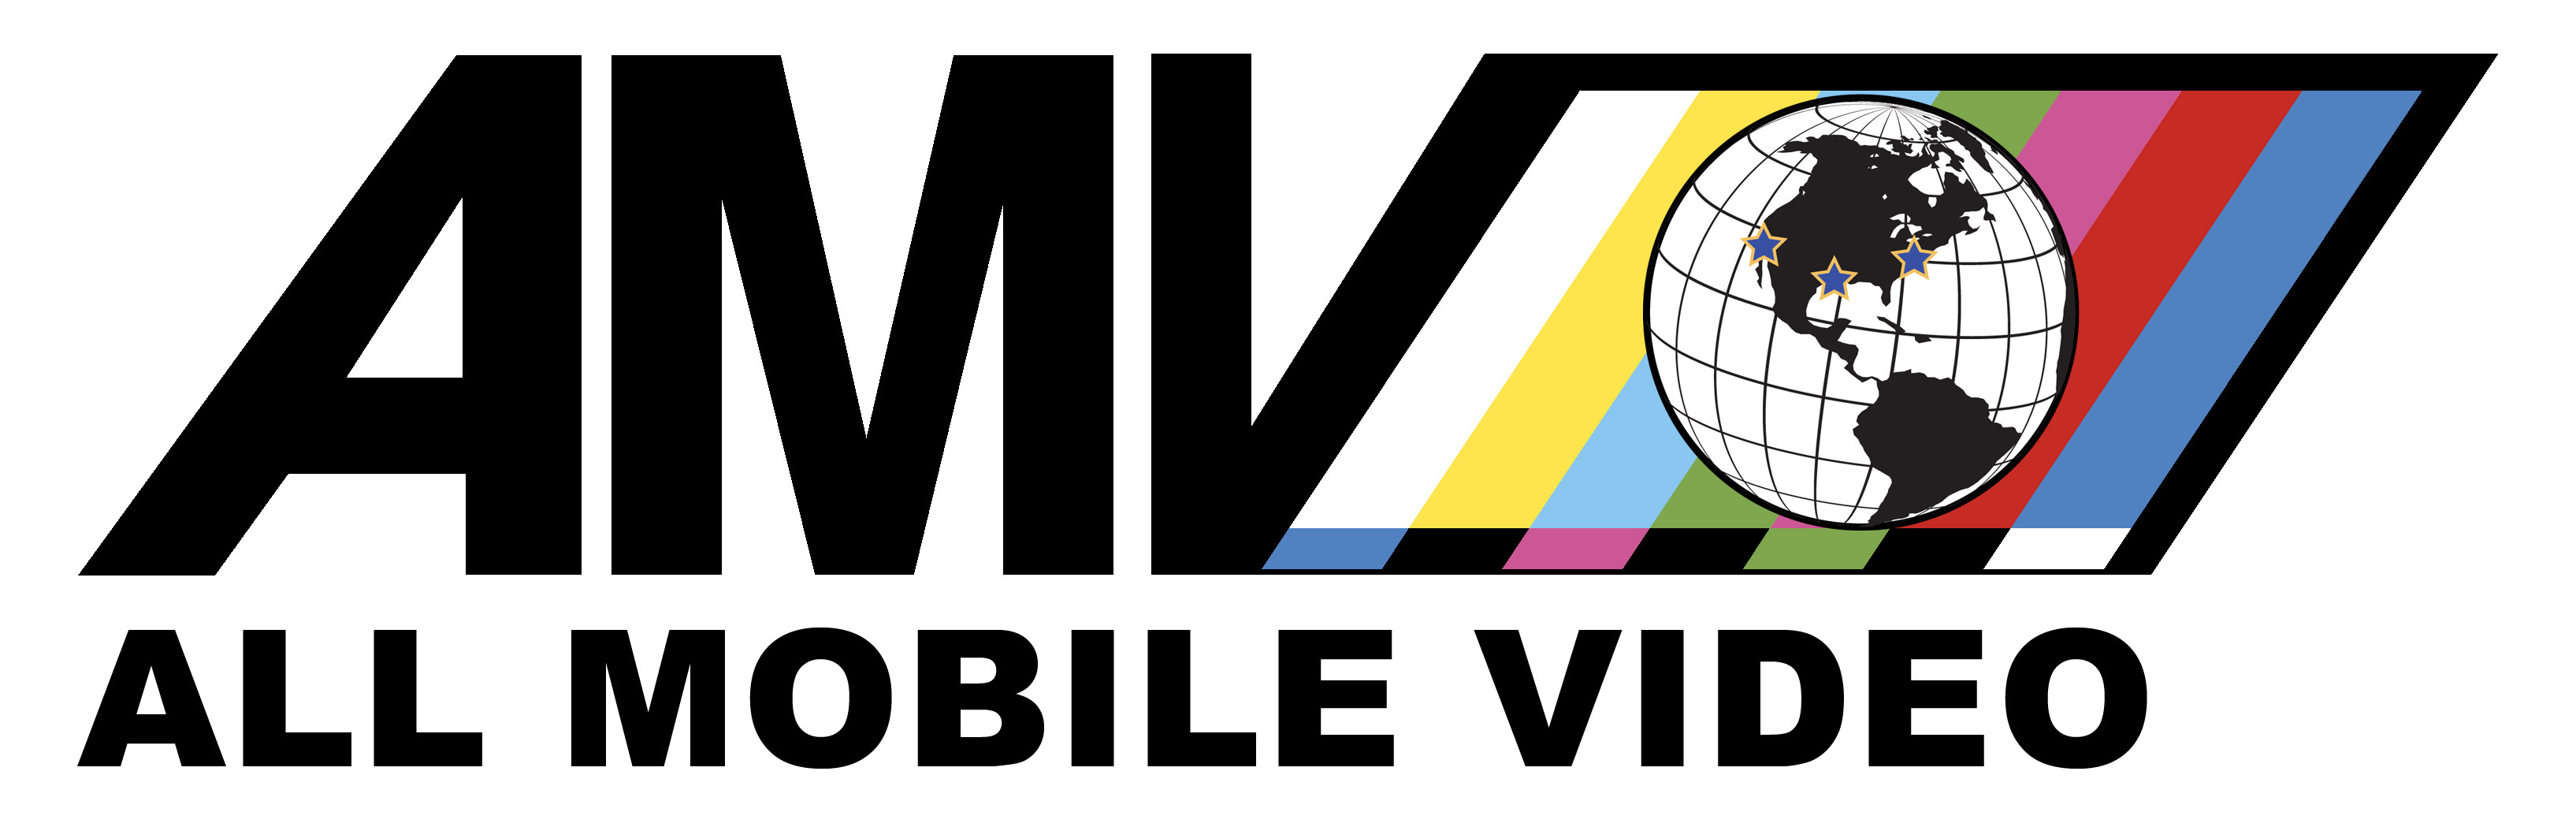 all mobile video logo.jpg